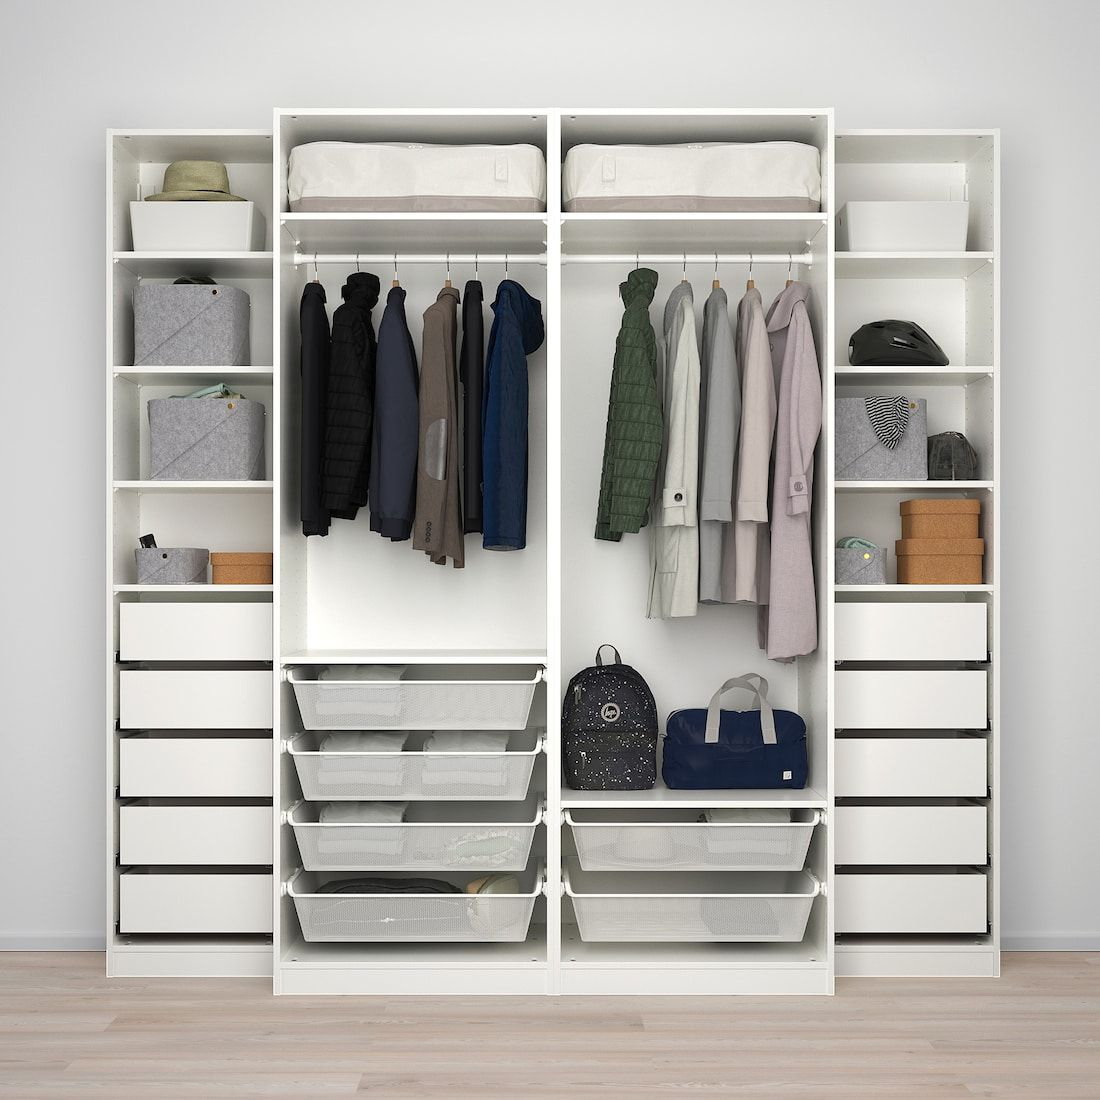 Pax Wardrobe White Mehamn 98 3 8x26x93 1 8 Ikea Pax Wardrobe Ikea Pax Bedroom Built In Wardrobe